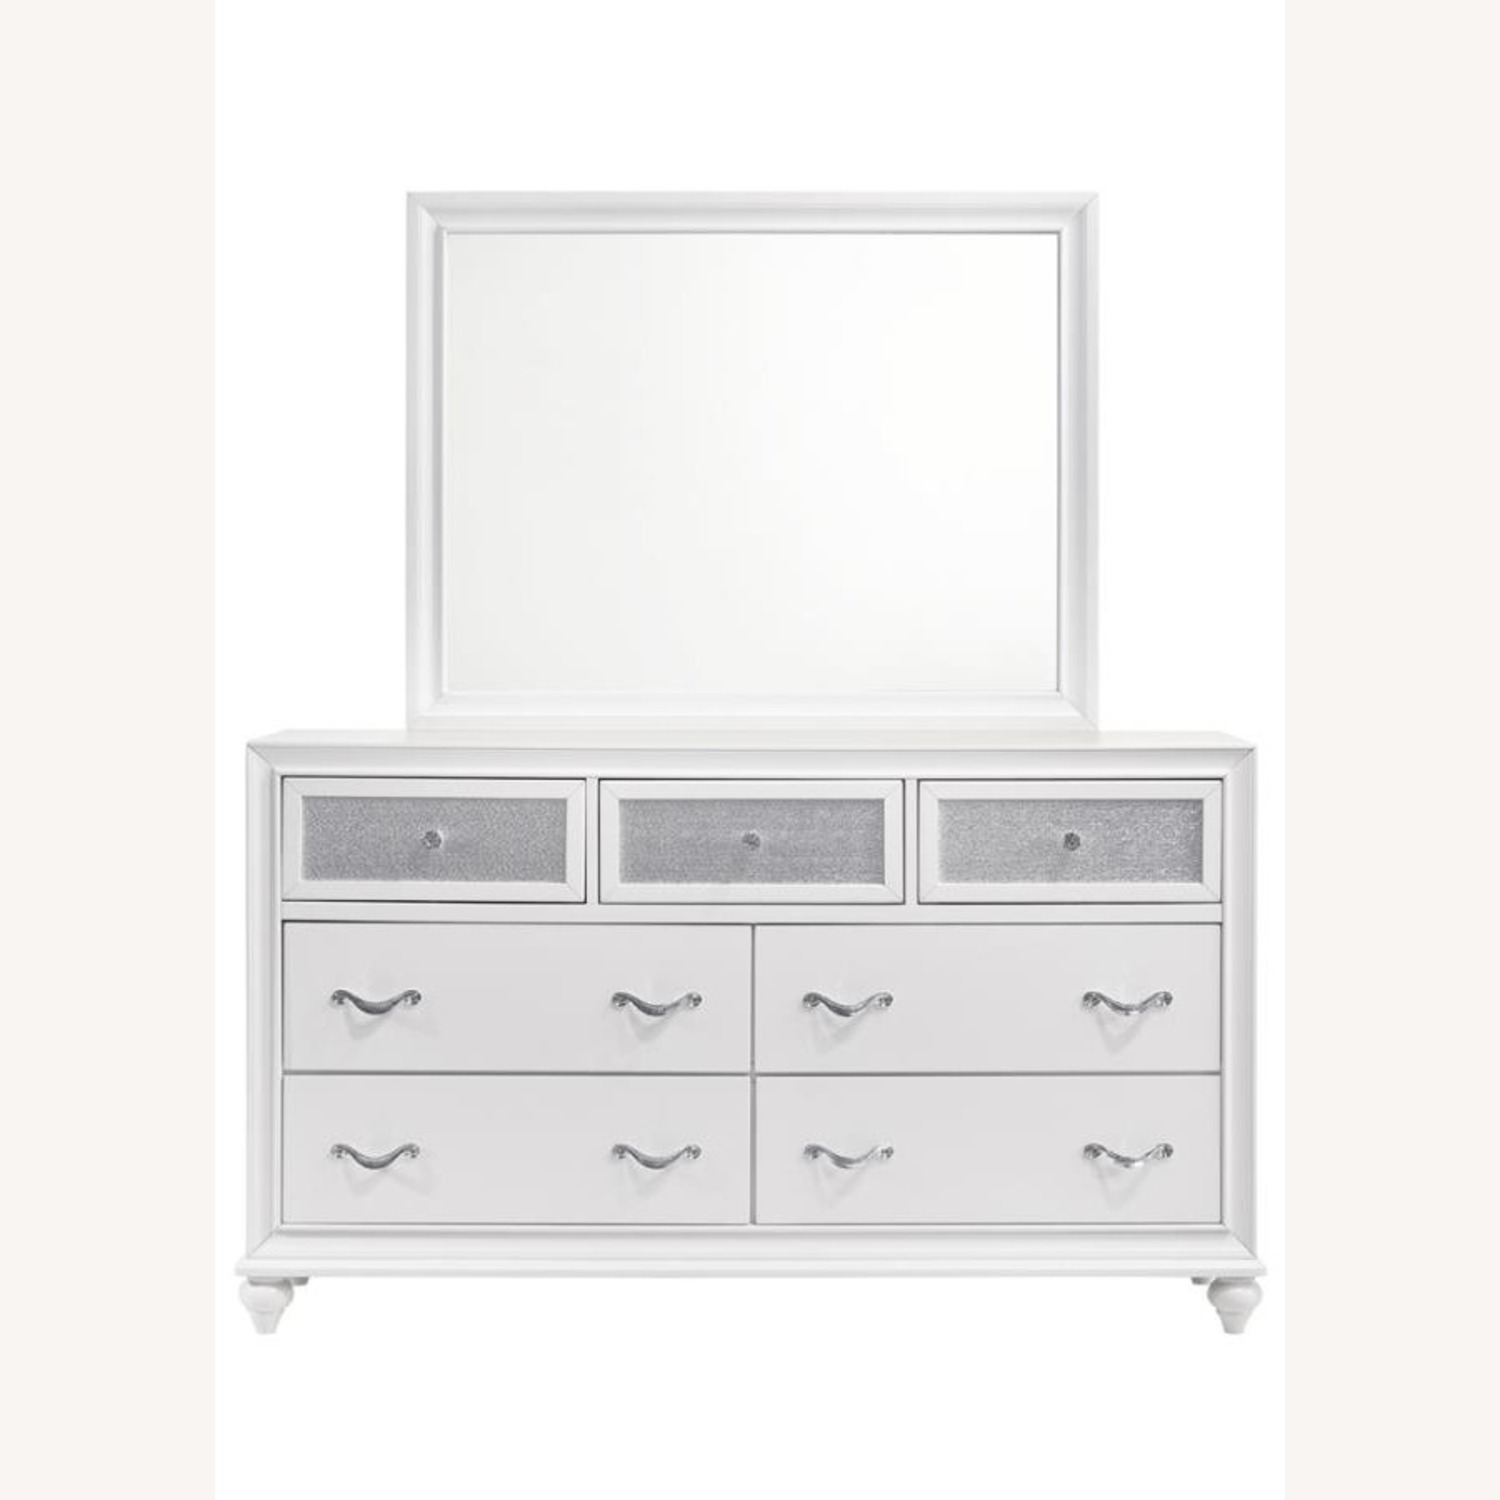 Mirror Crafted In White Wood Finish - image-1